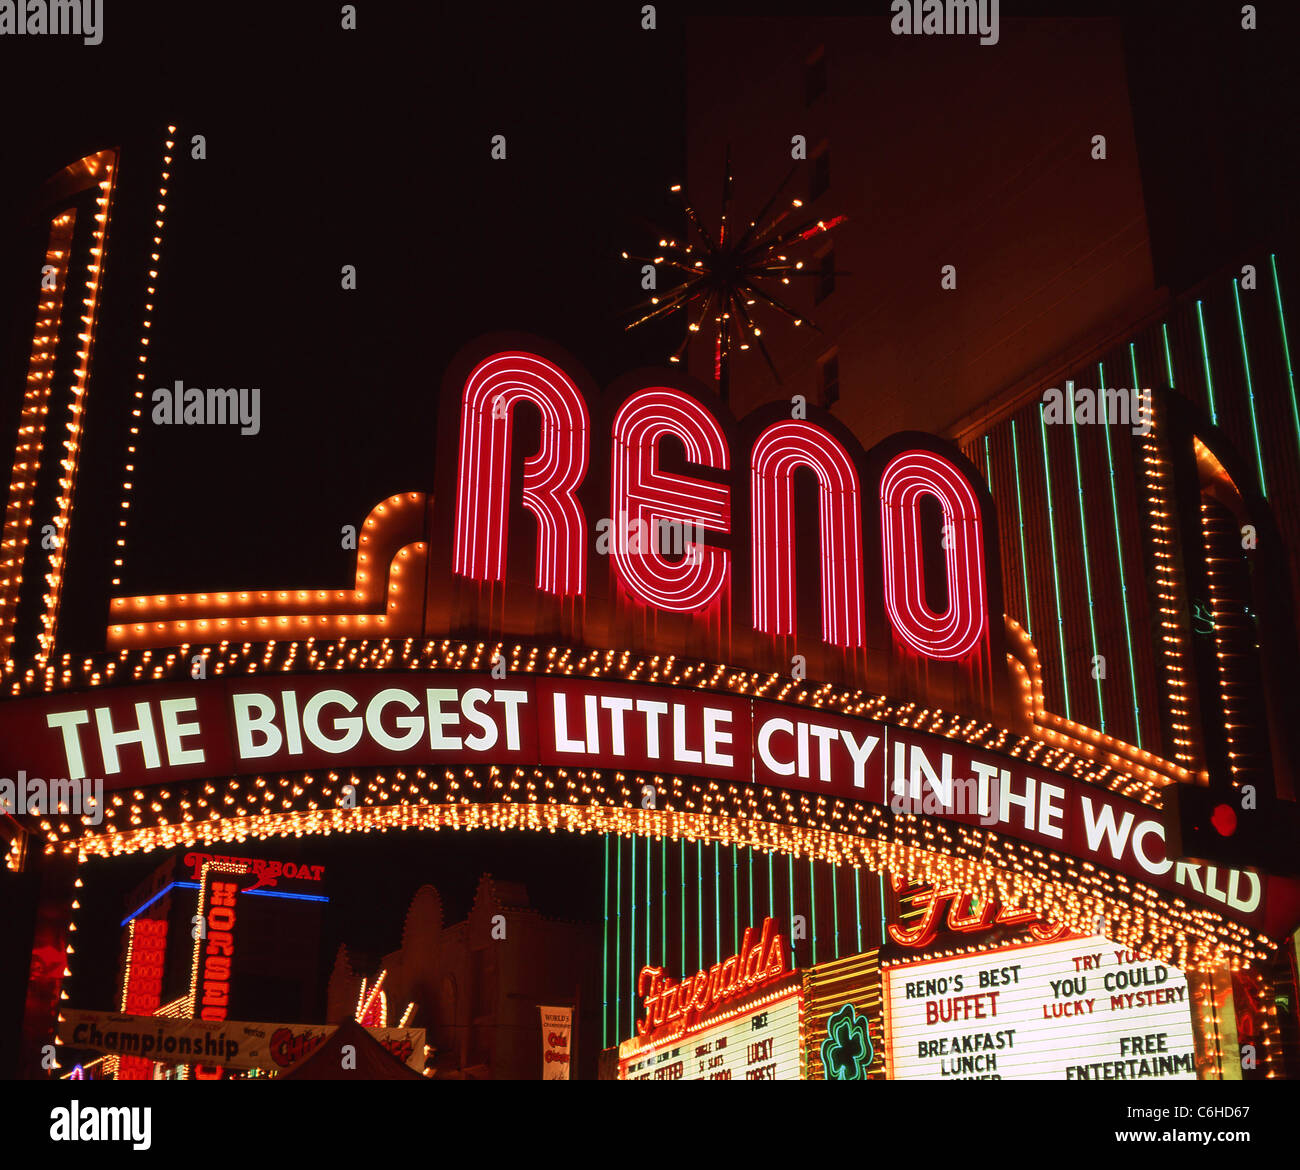 'The Biggest Little City in the World' Virginia Street arch sign at night, Downtown, Reno, Nevada, United States - Stock Image